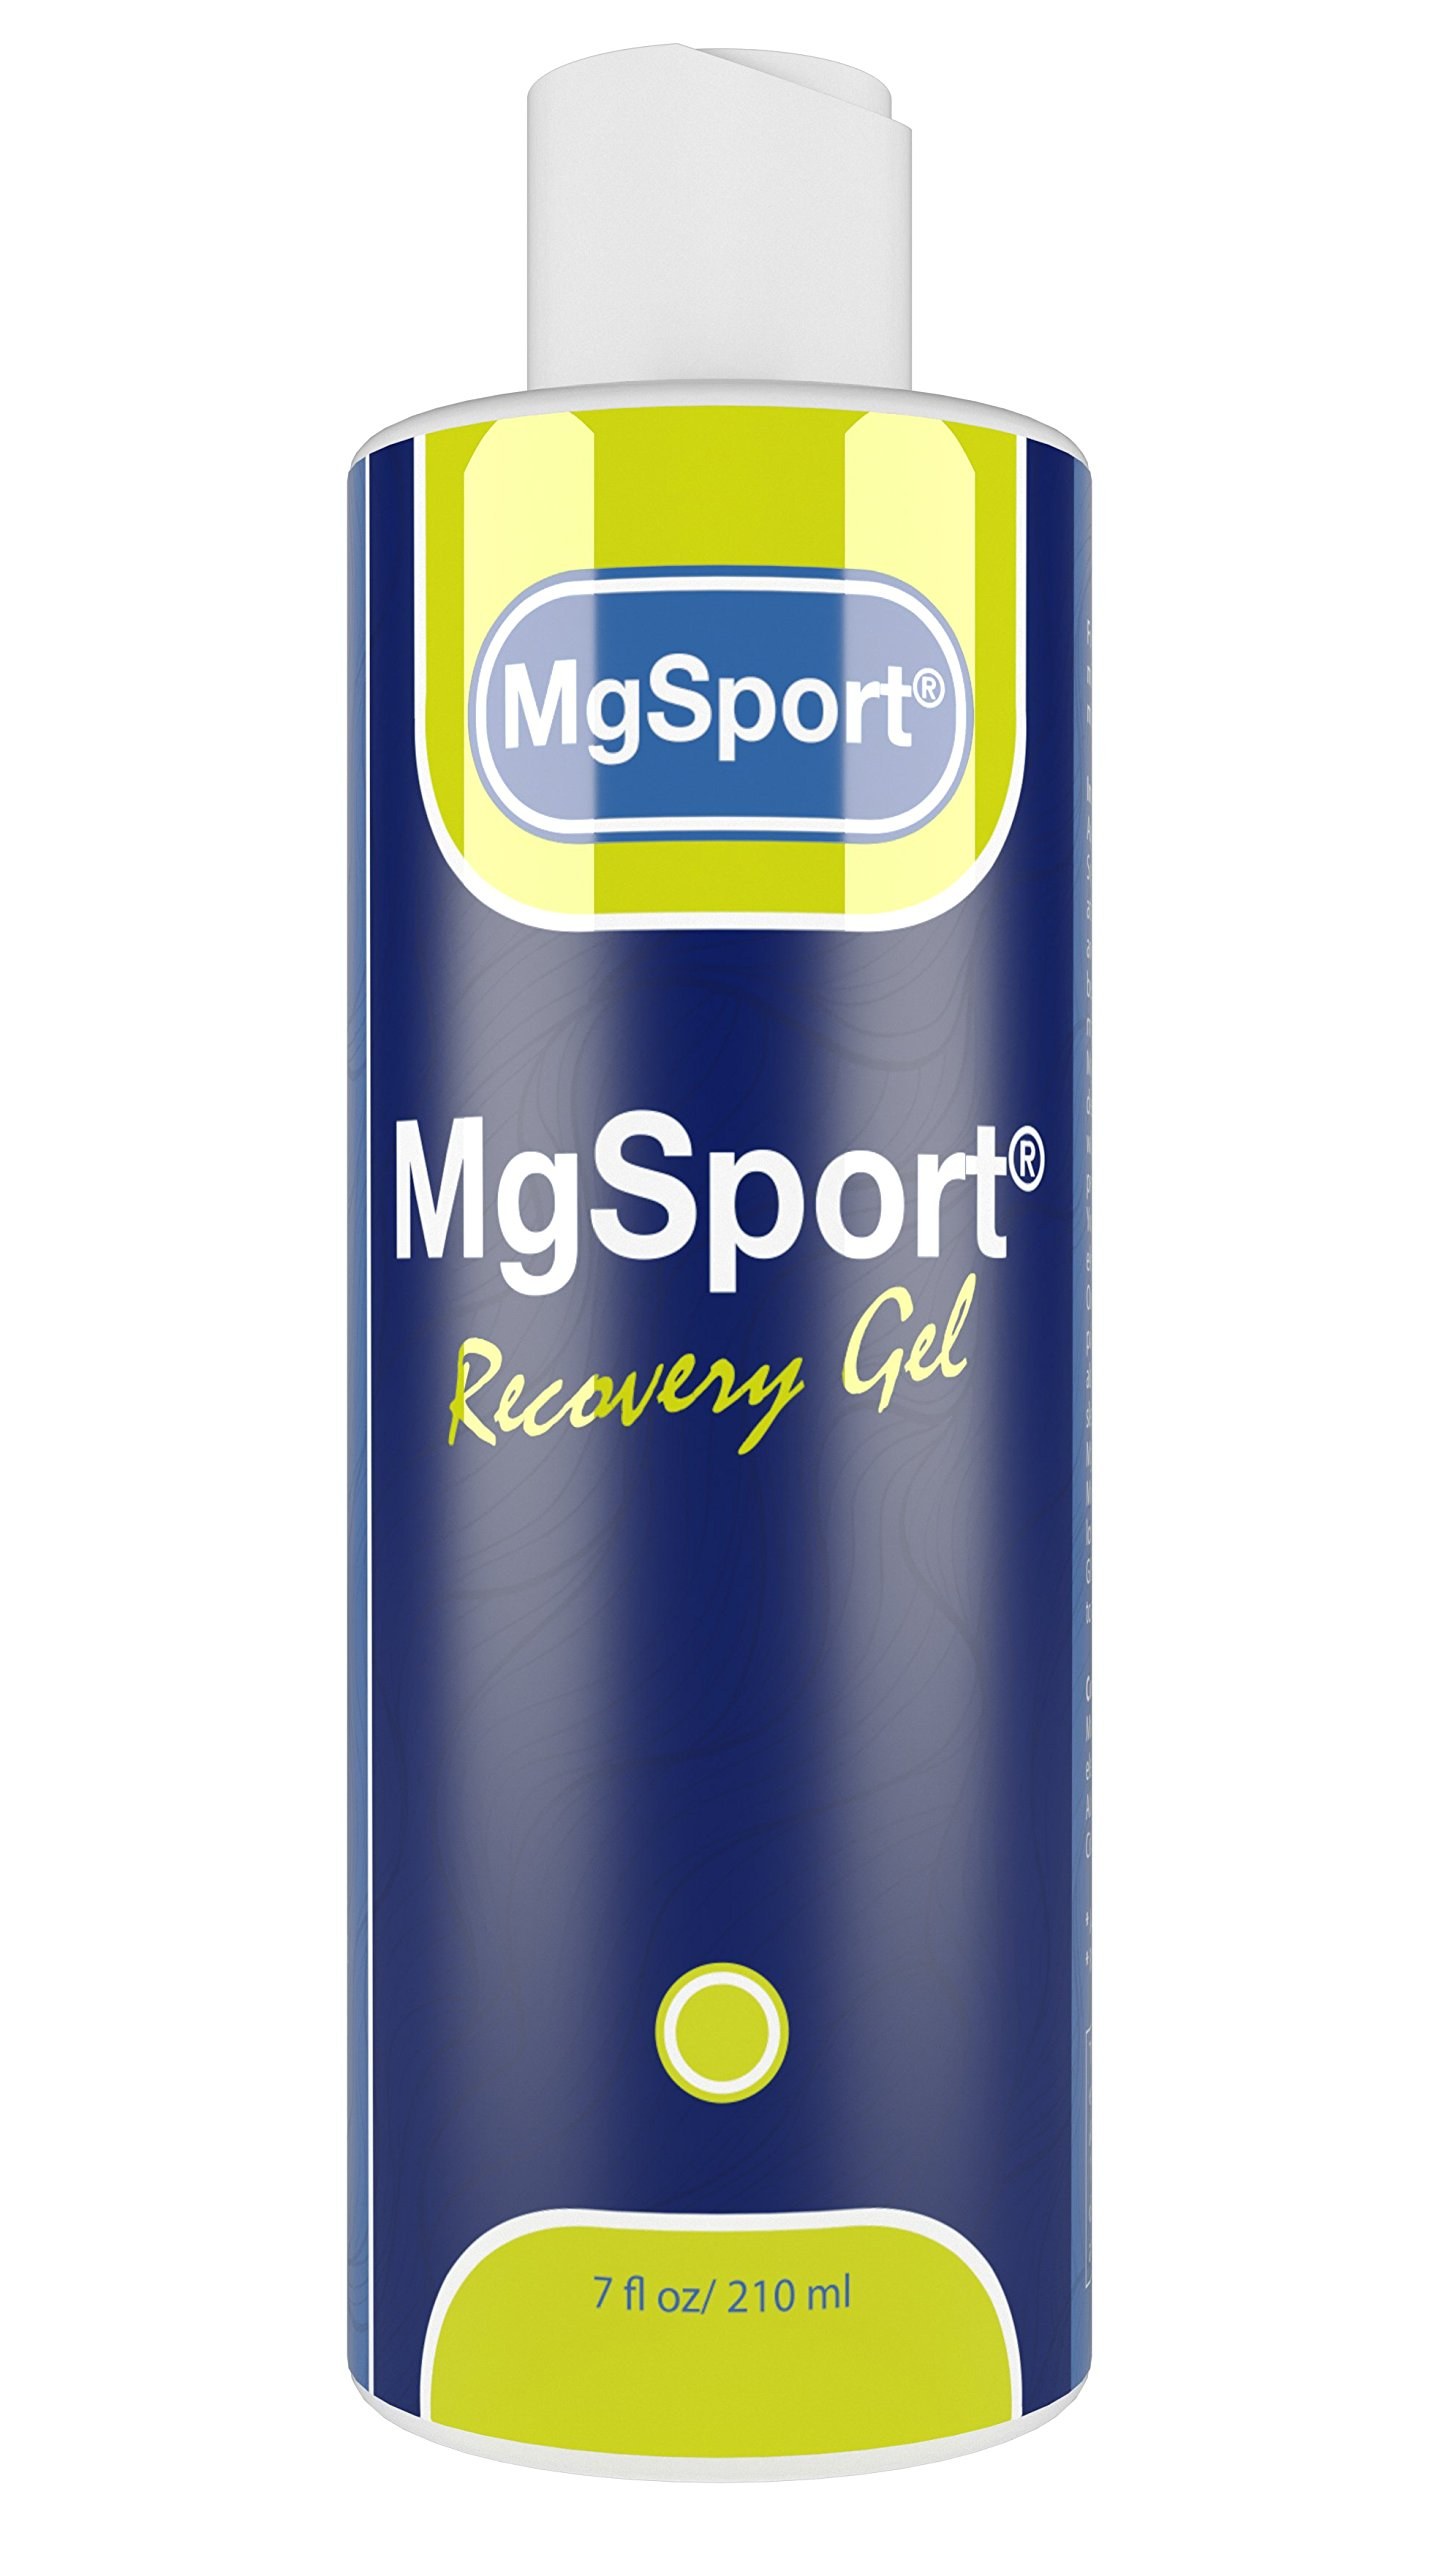 High Absorption Magnesium Gel for Leg Cramps - 7 oz. Recovery Gel from The Dead Sea for Sore Muscles and Restless Leg Syndrome - Less Itch & Less Sting Than Magnesium Oil by MgSport